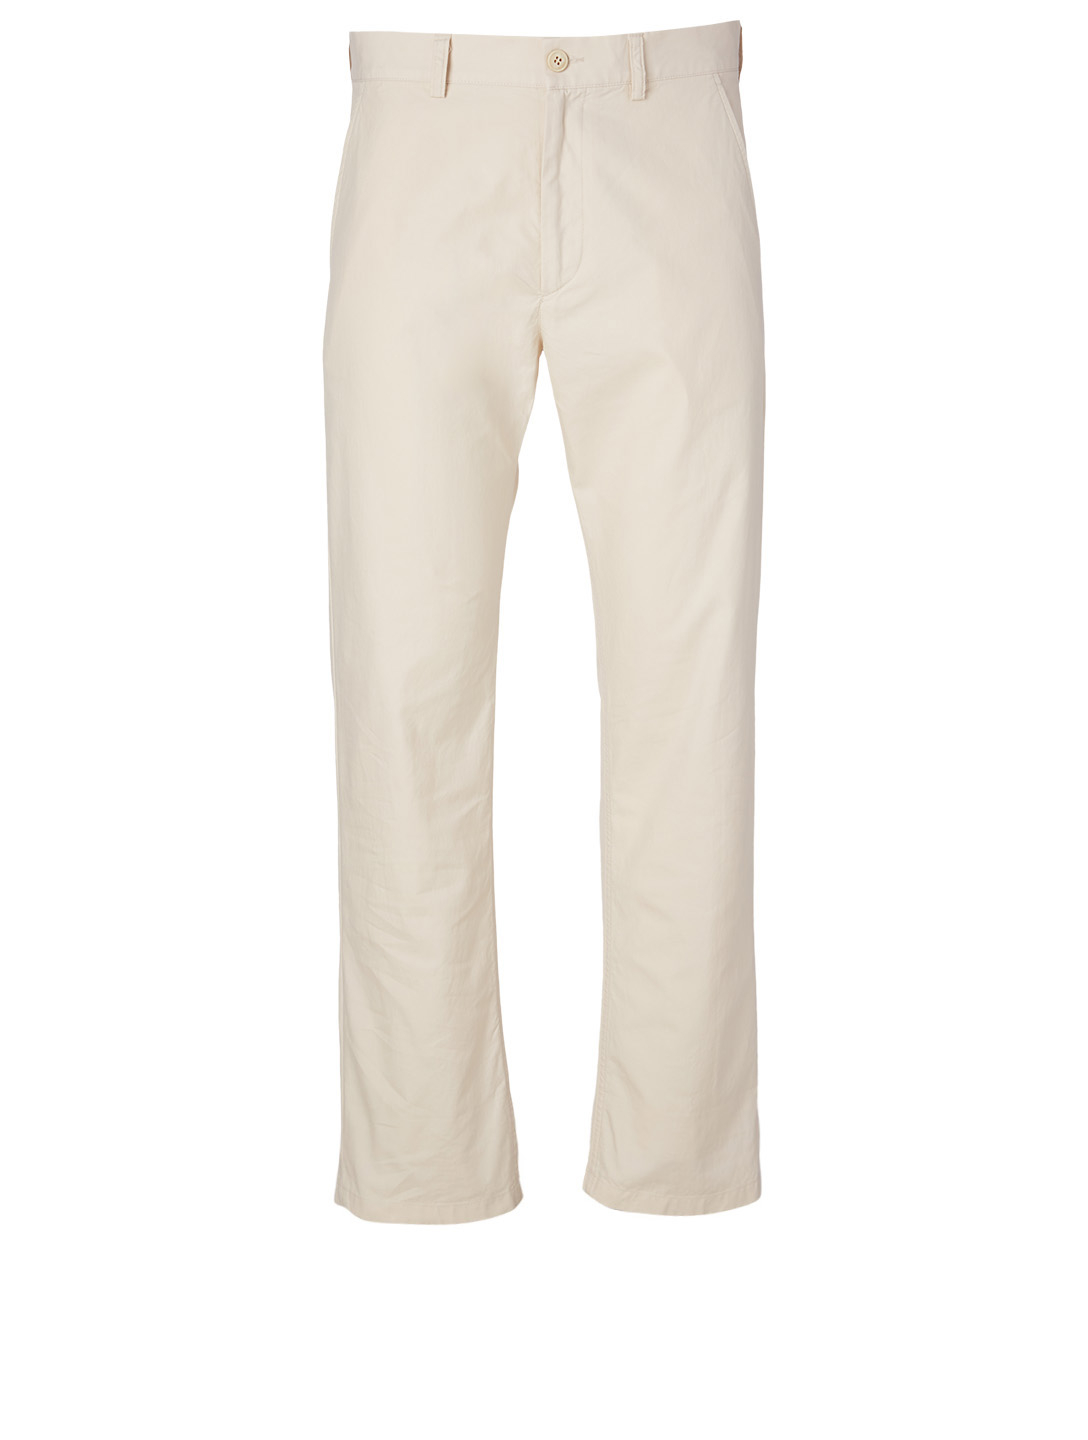 DRIES VAN NOTEN Petricks Cotton Pants Men's White